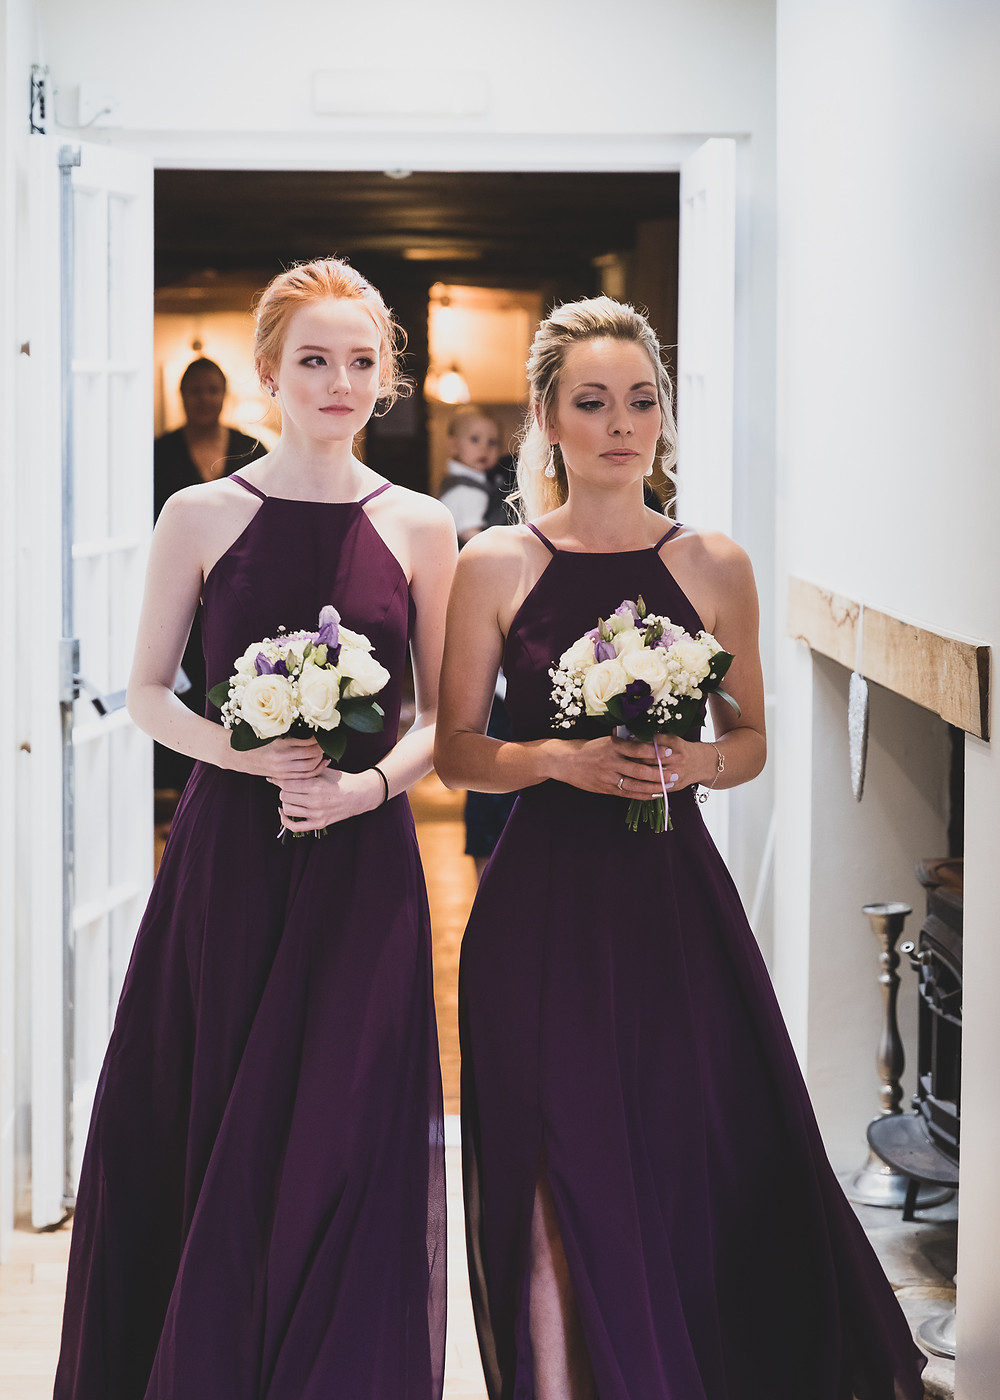 Purple bridesmaid dresses, beautiful maids wedding pocket watch by Steve and Tania Photography